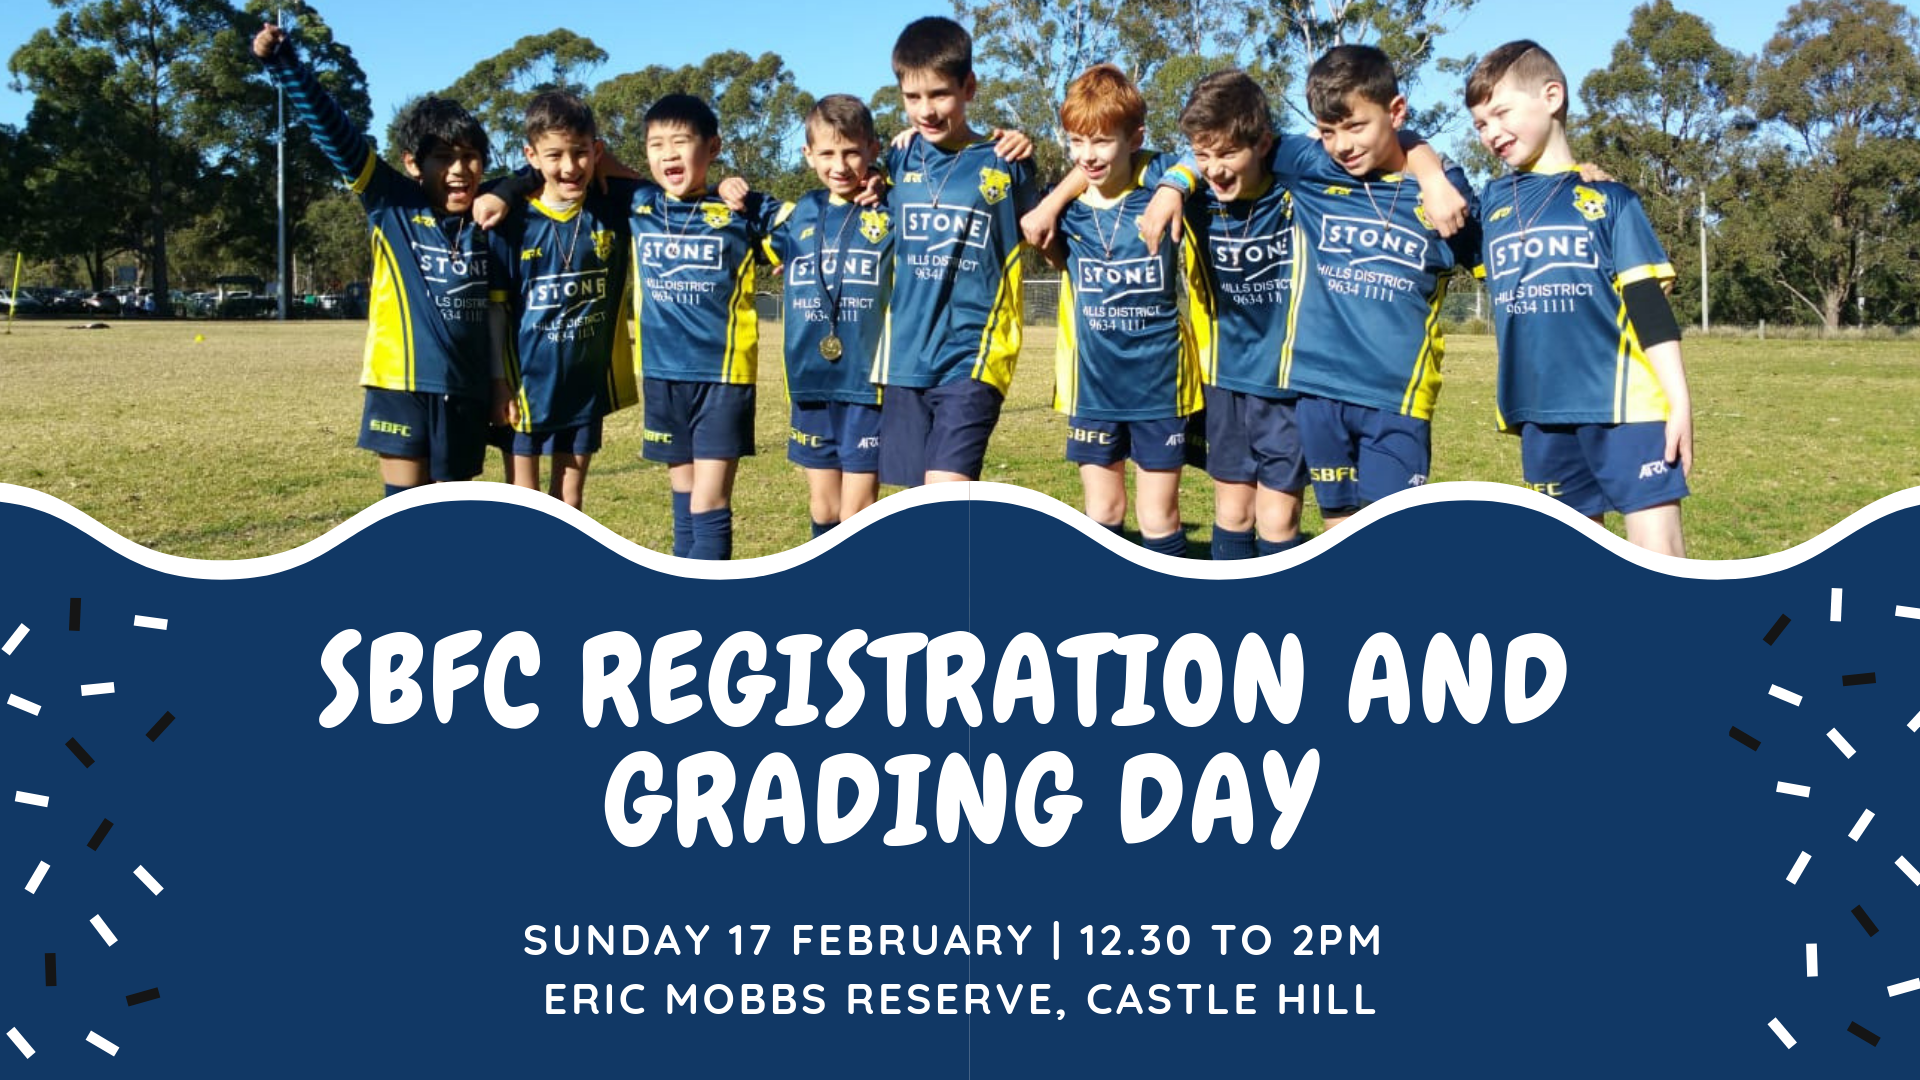 2019 Rego & grading day